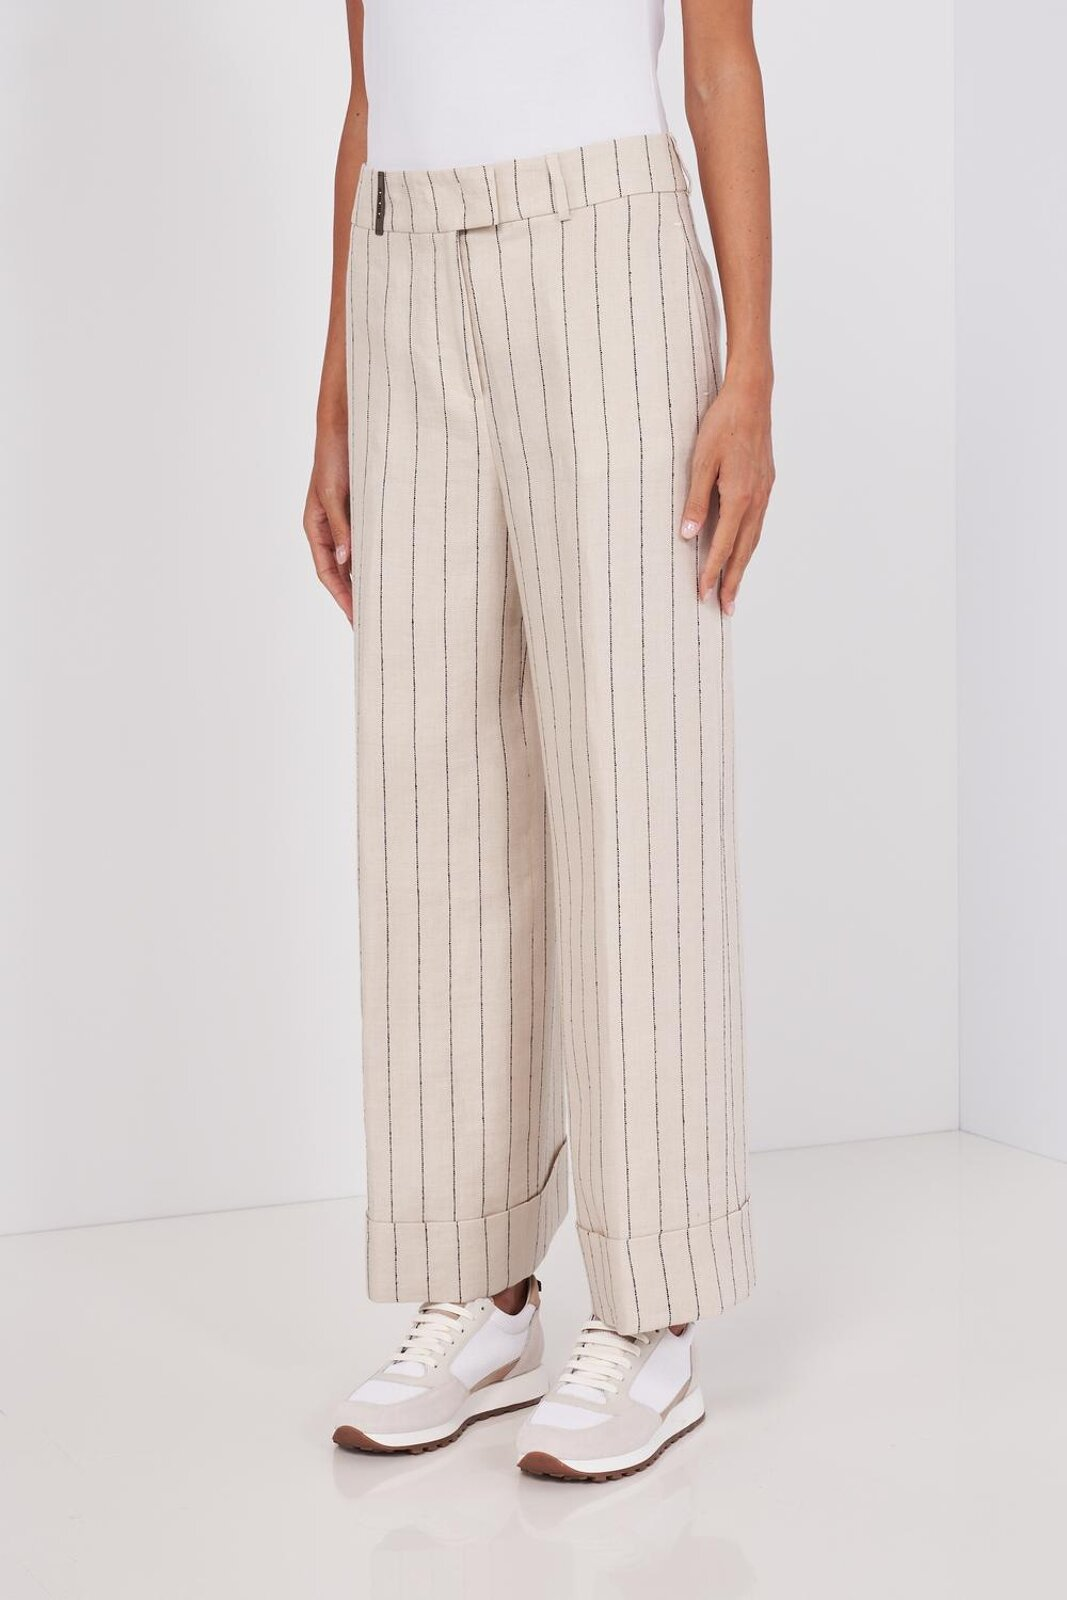 Palazzo Trousers In Pure Linen With Thin Stripes. High waist, two pockets on the front and two welt pockets on the back, flap on the bottom, zip closure and hidden hooks. Wide fit. - Peserico